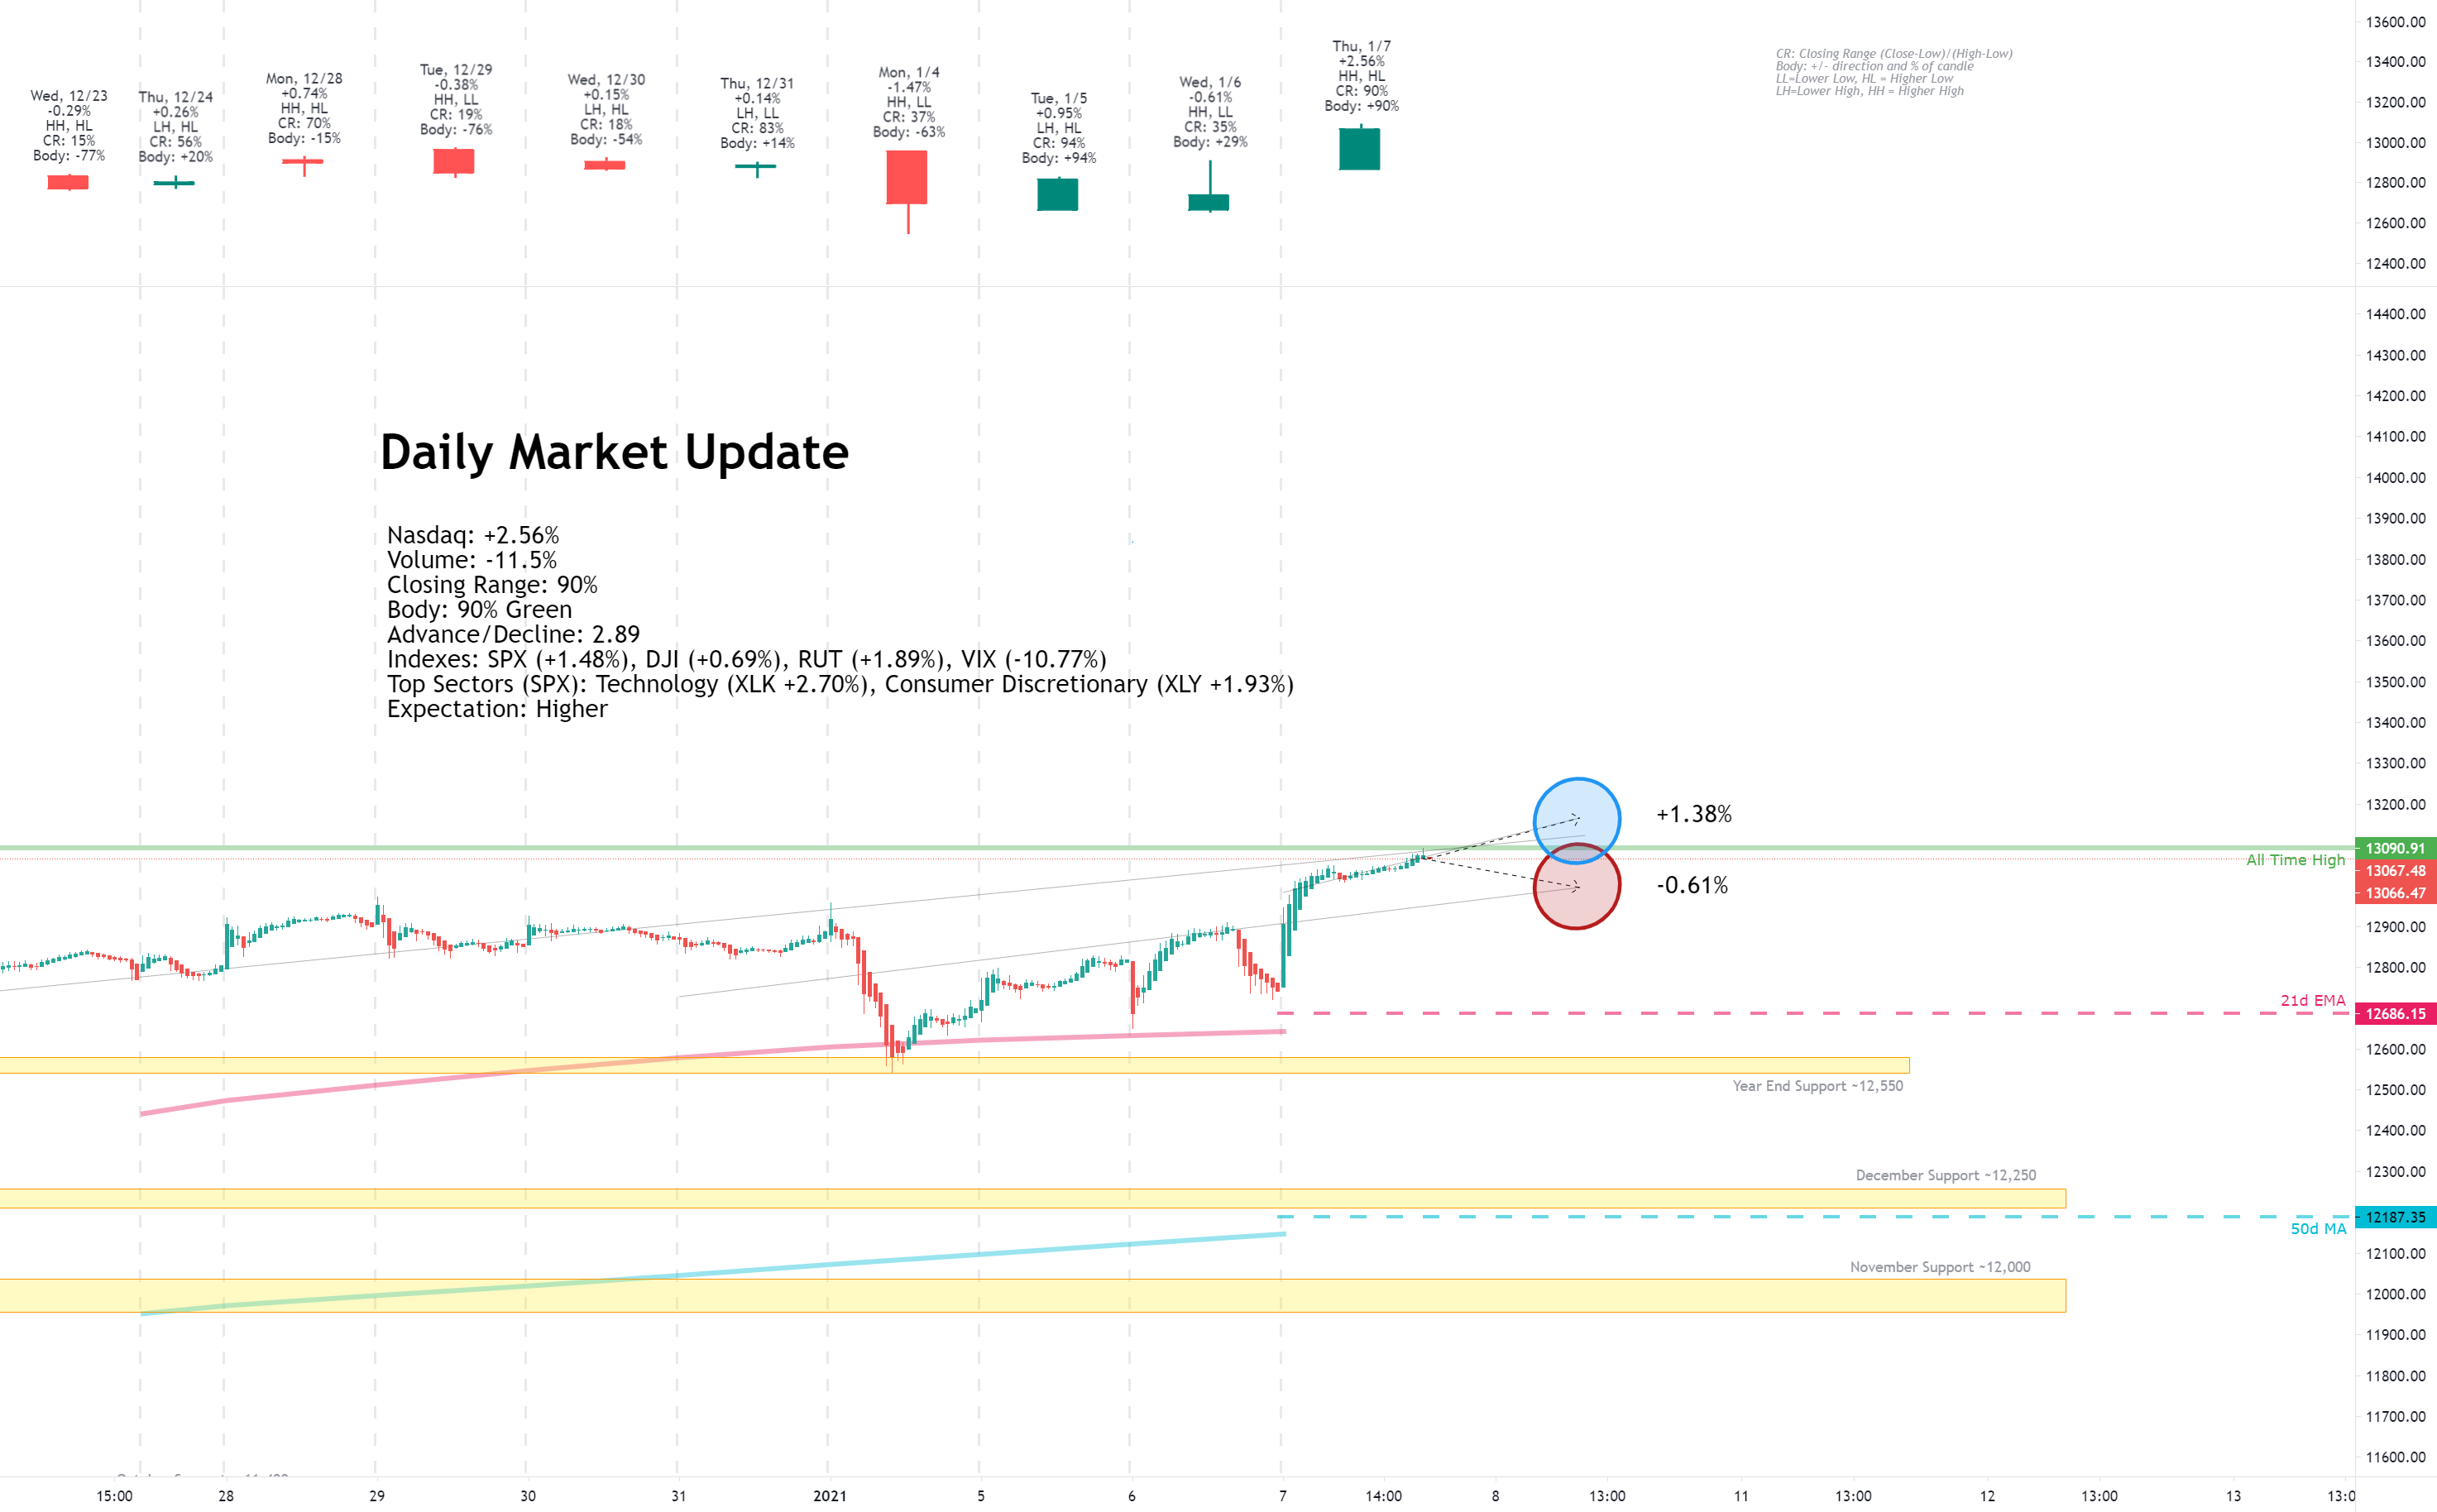 Daily Market Update for 1/7